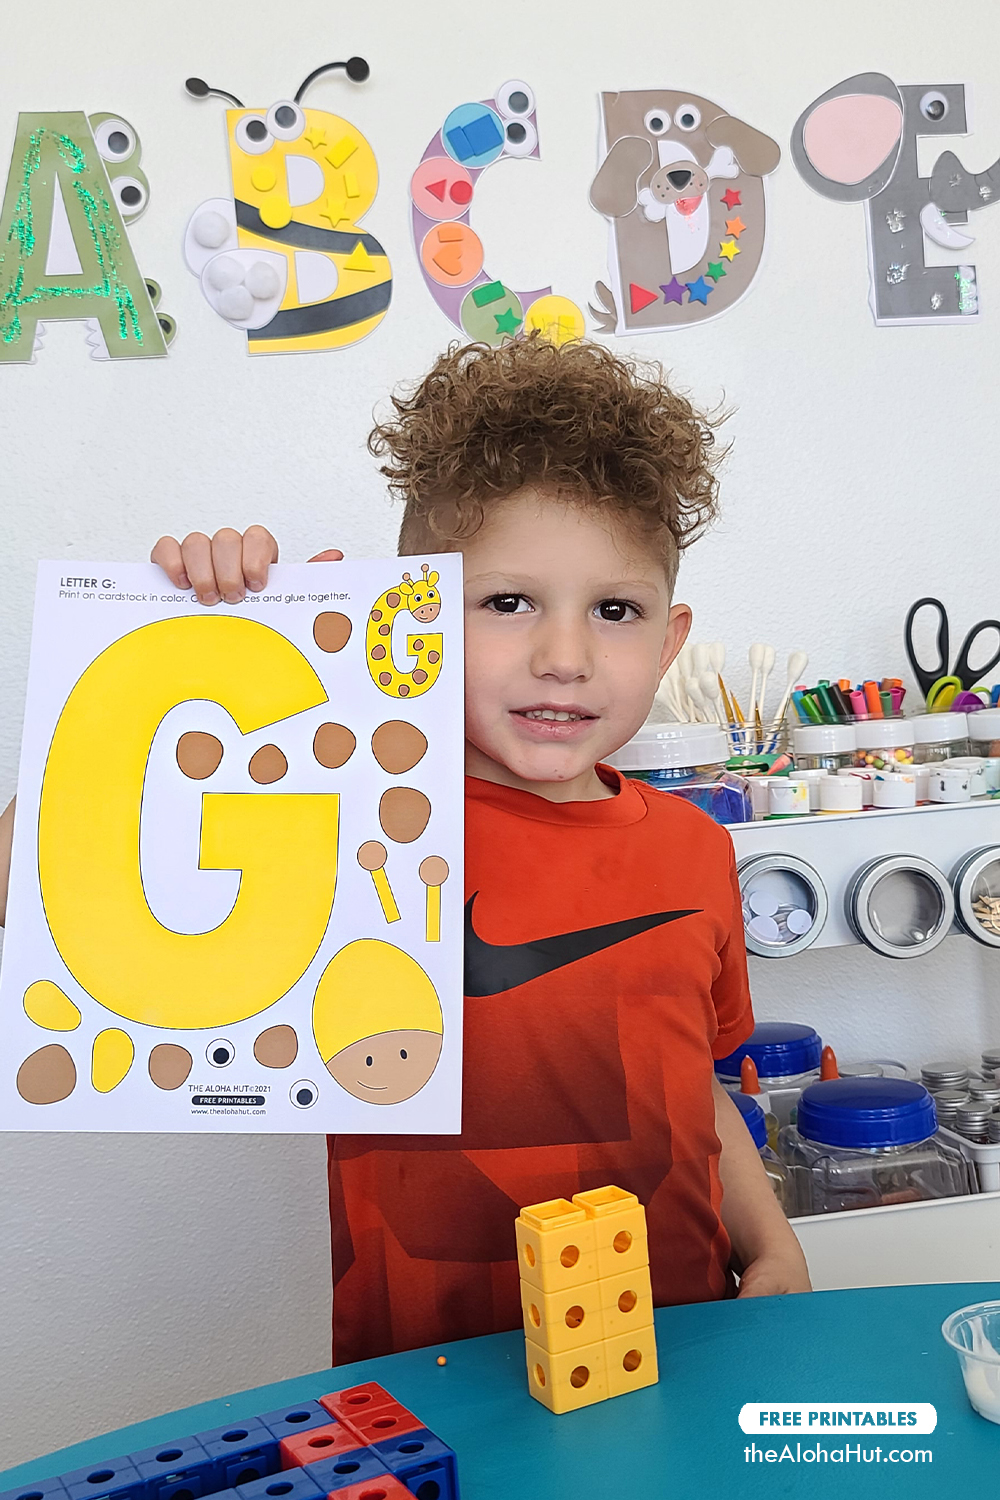 Alphabet Letter Crafts - Letter G - free printable 3 by the Aloha Hut